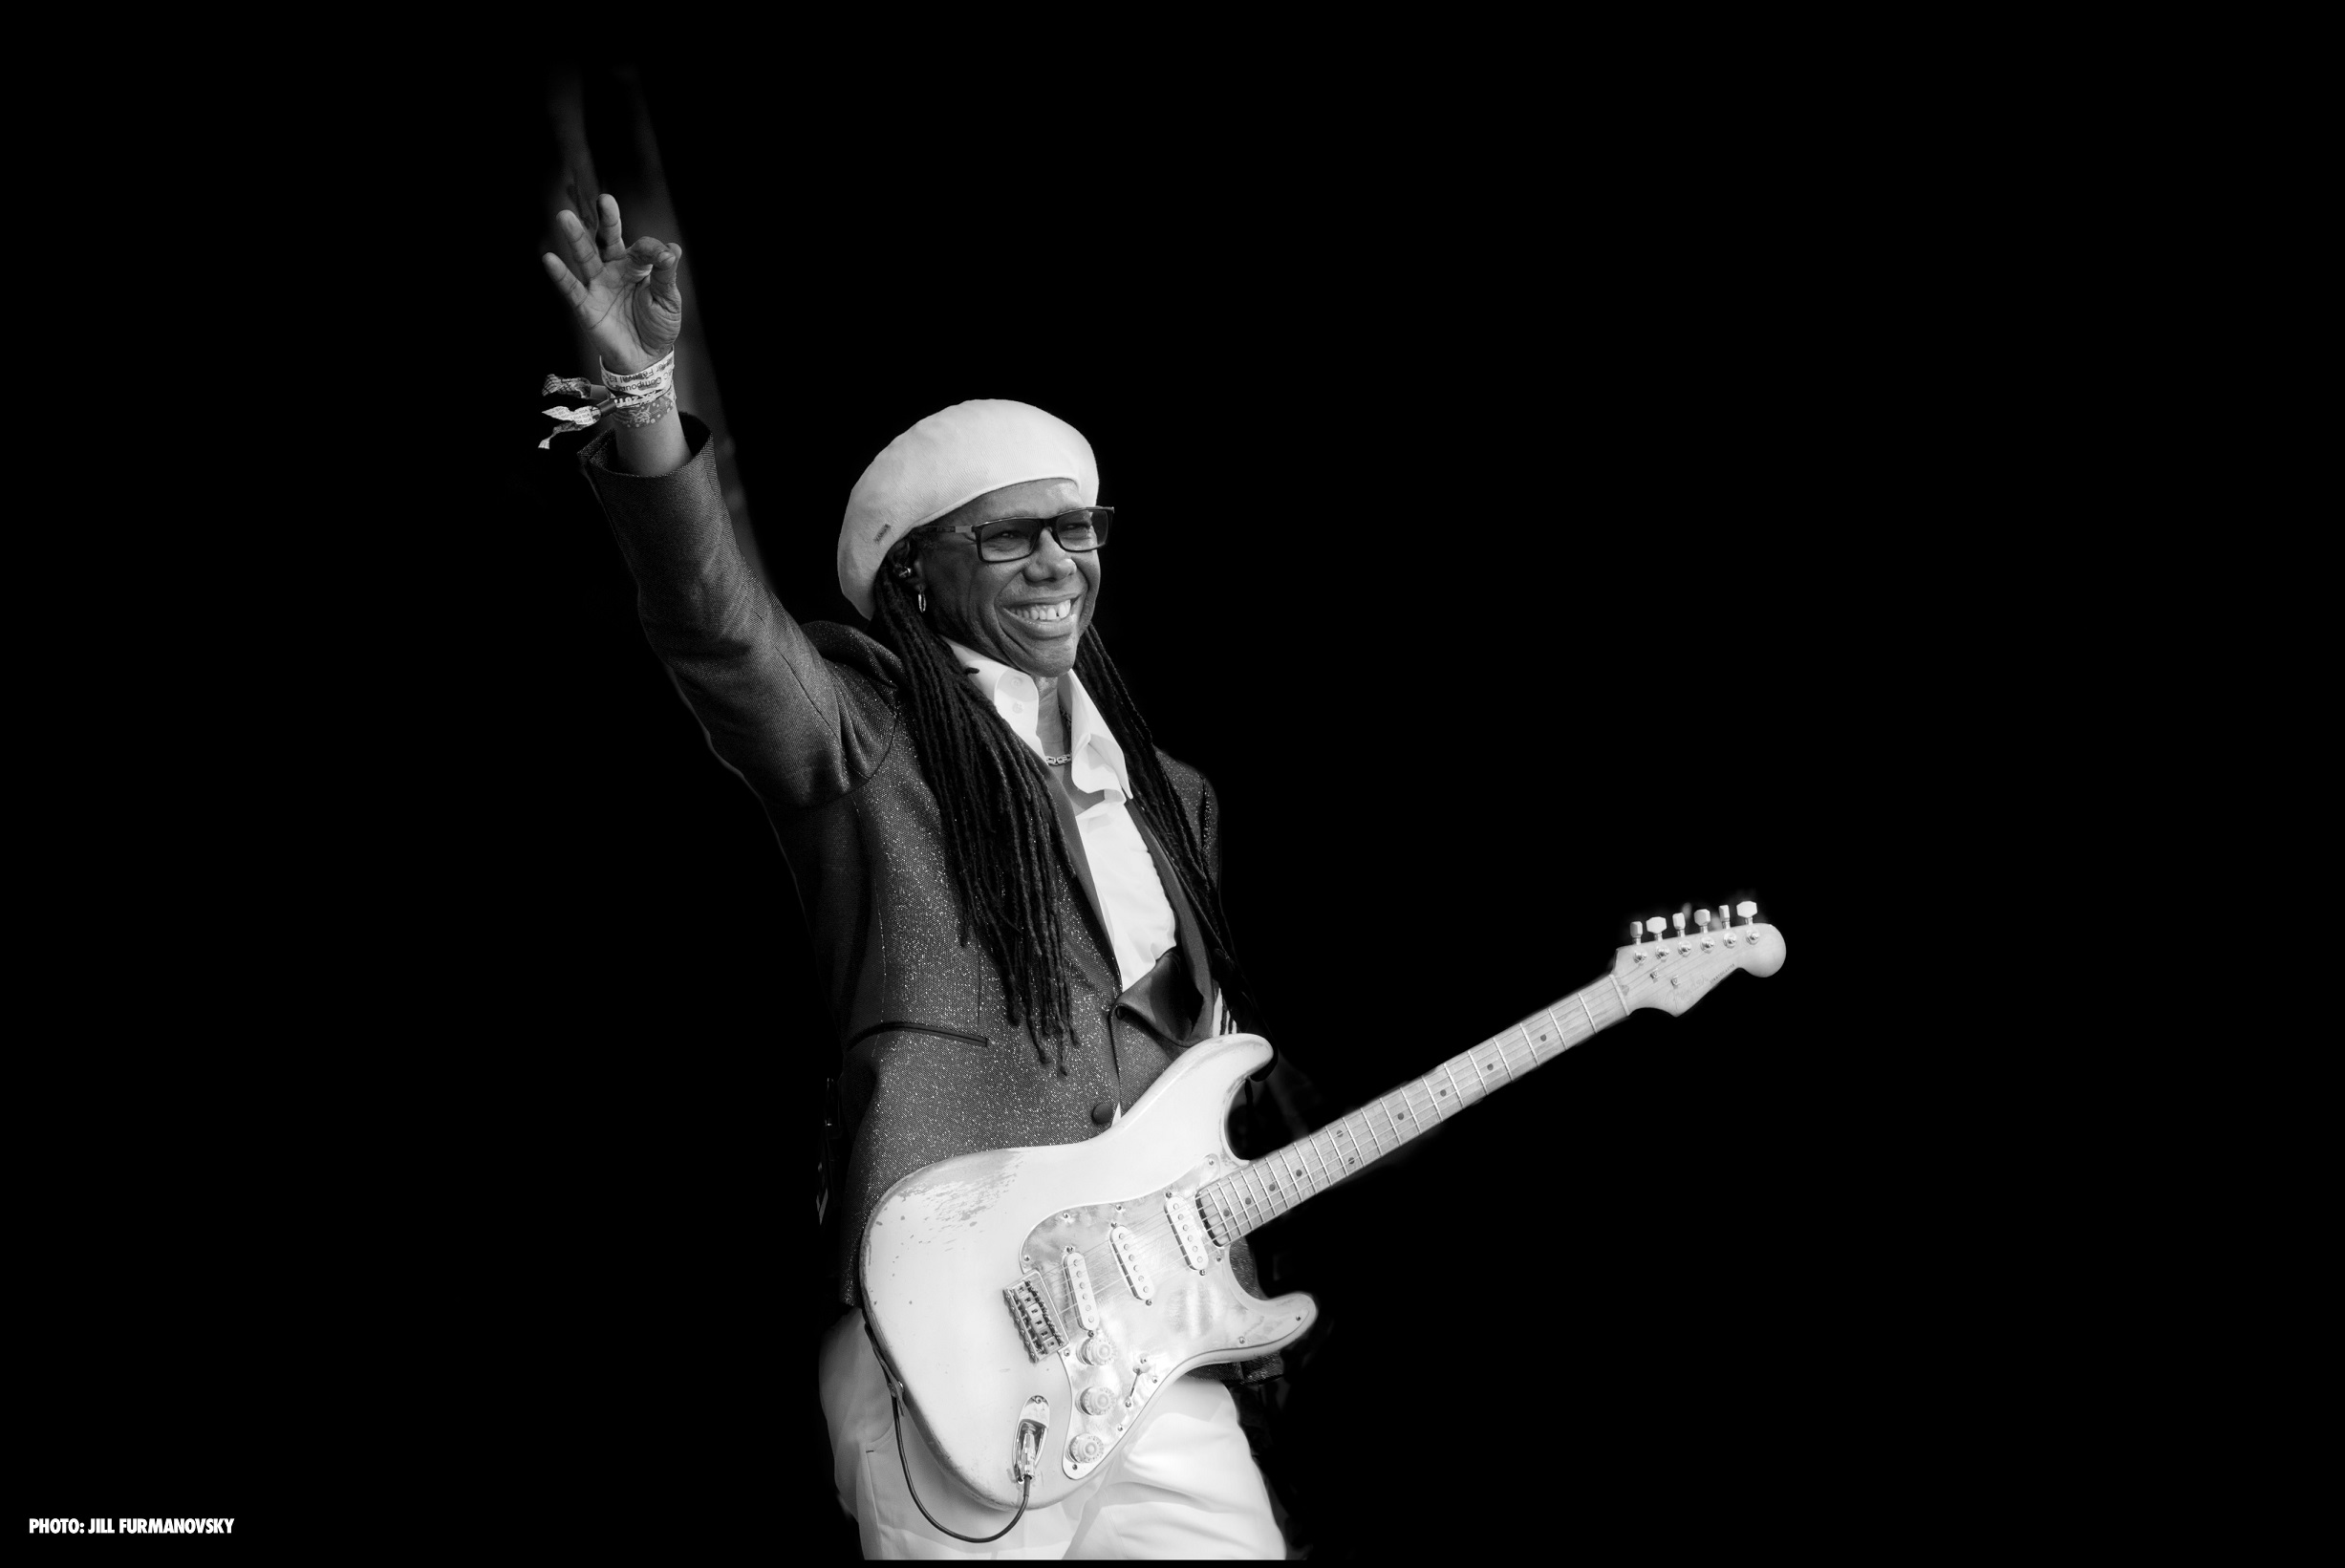 Nile Rodgers & Chic release new single